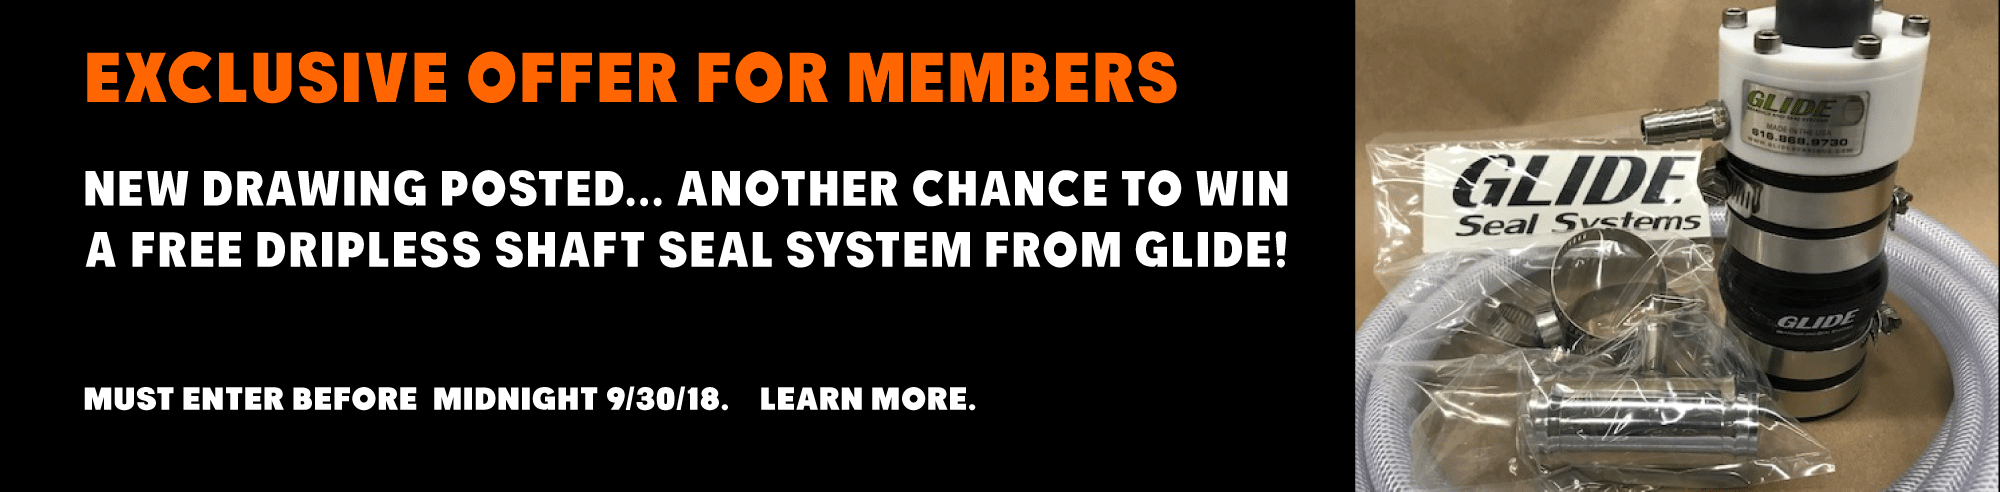 Glide-Promo-Ad3.png